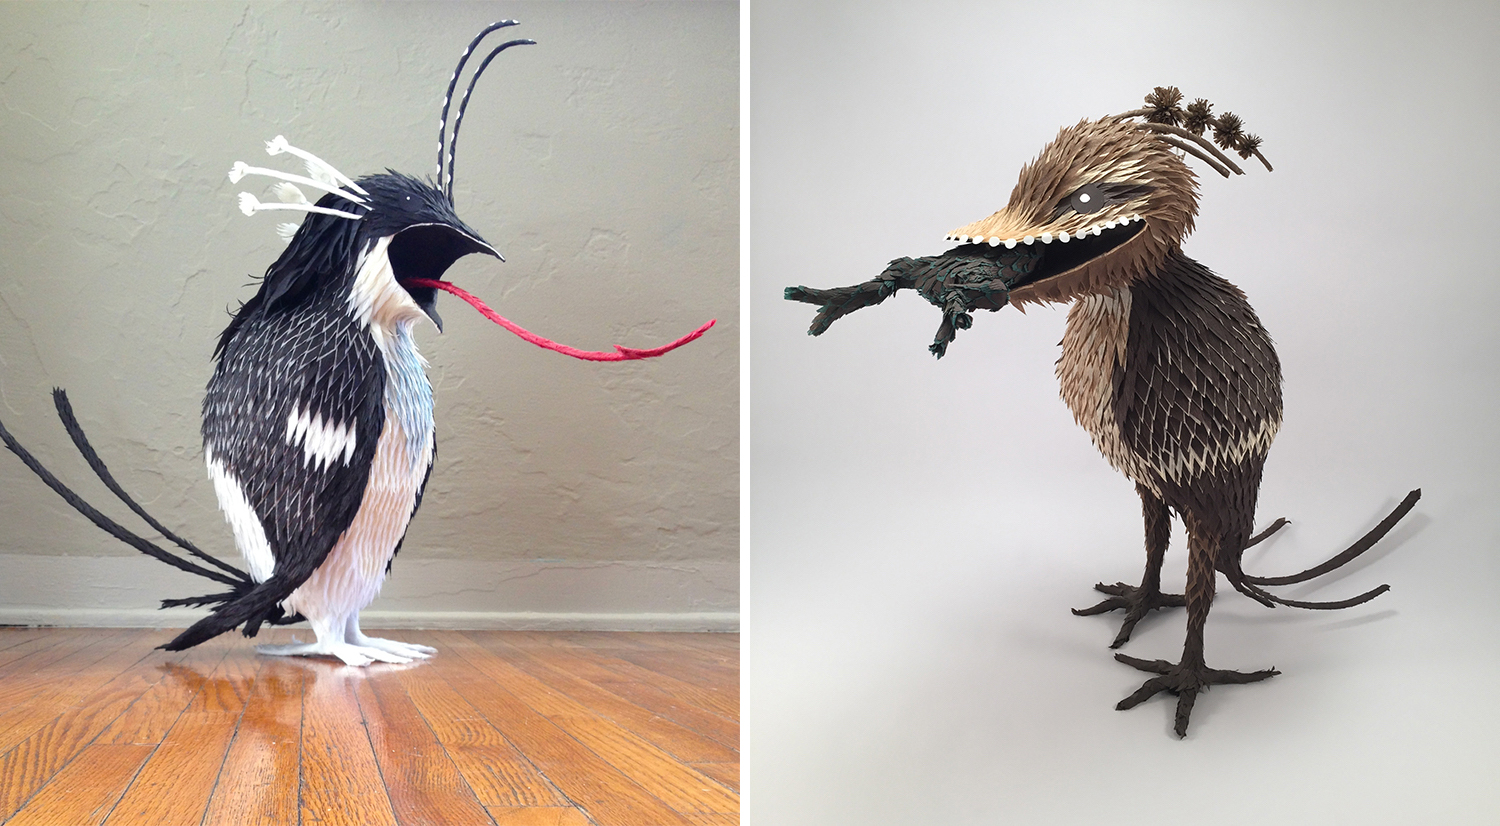 Figures From Hieronymus Bosch's Paintings Recreated as Sculptural Pinatas